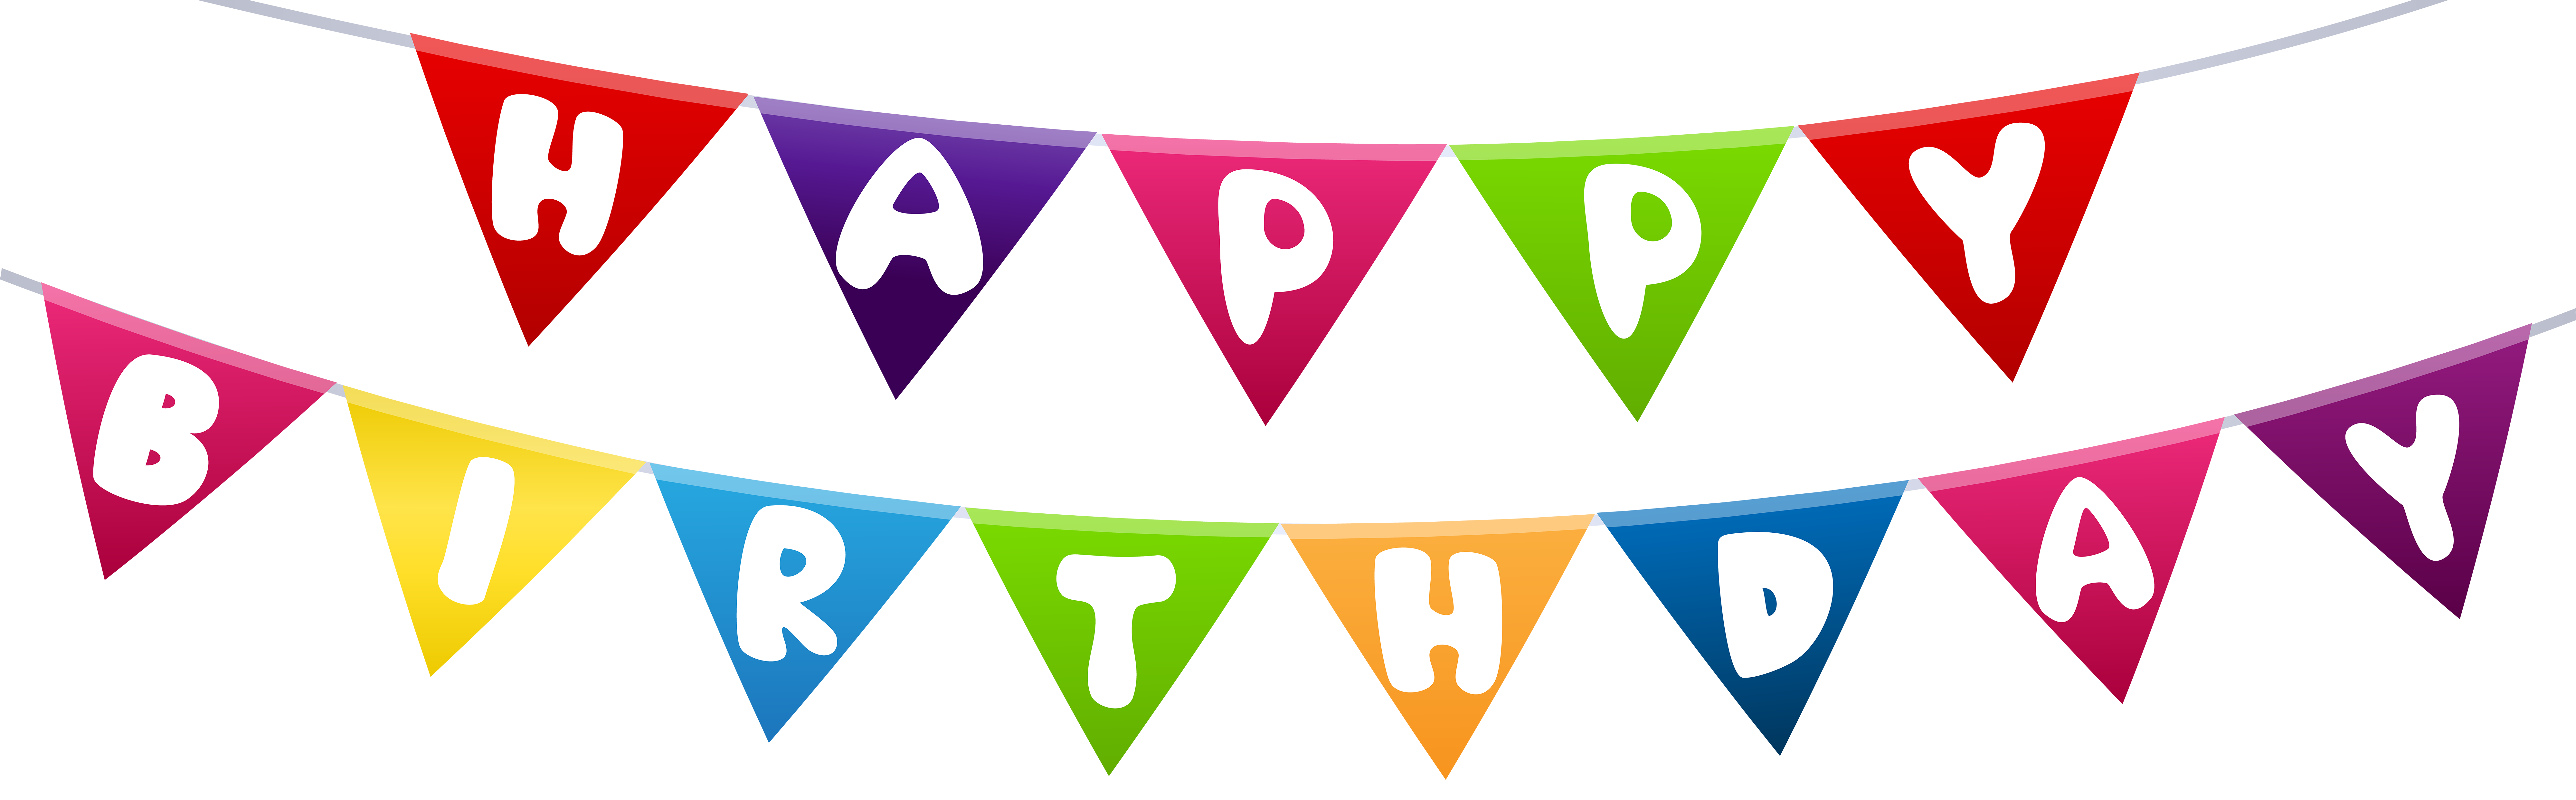 Free Clipart Happy Birthday Free Happy Birthday Transparent Free For Download On Webstockreview 2020